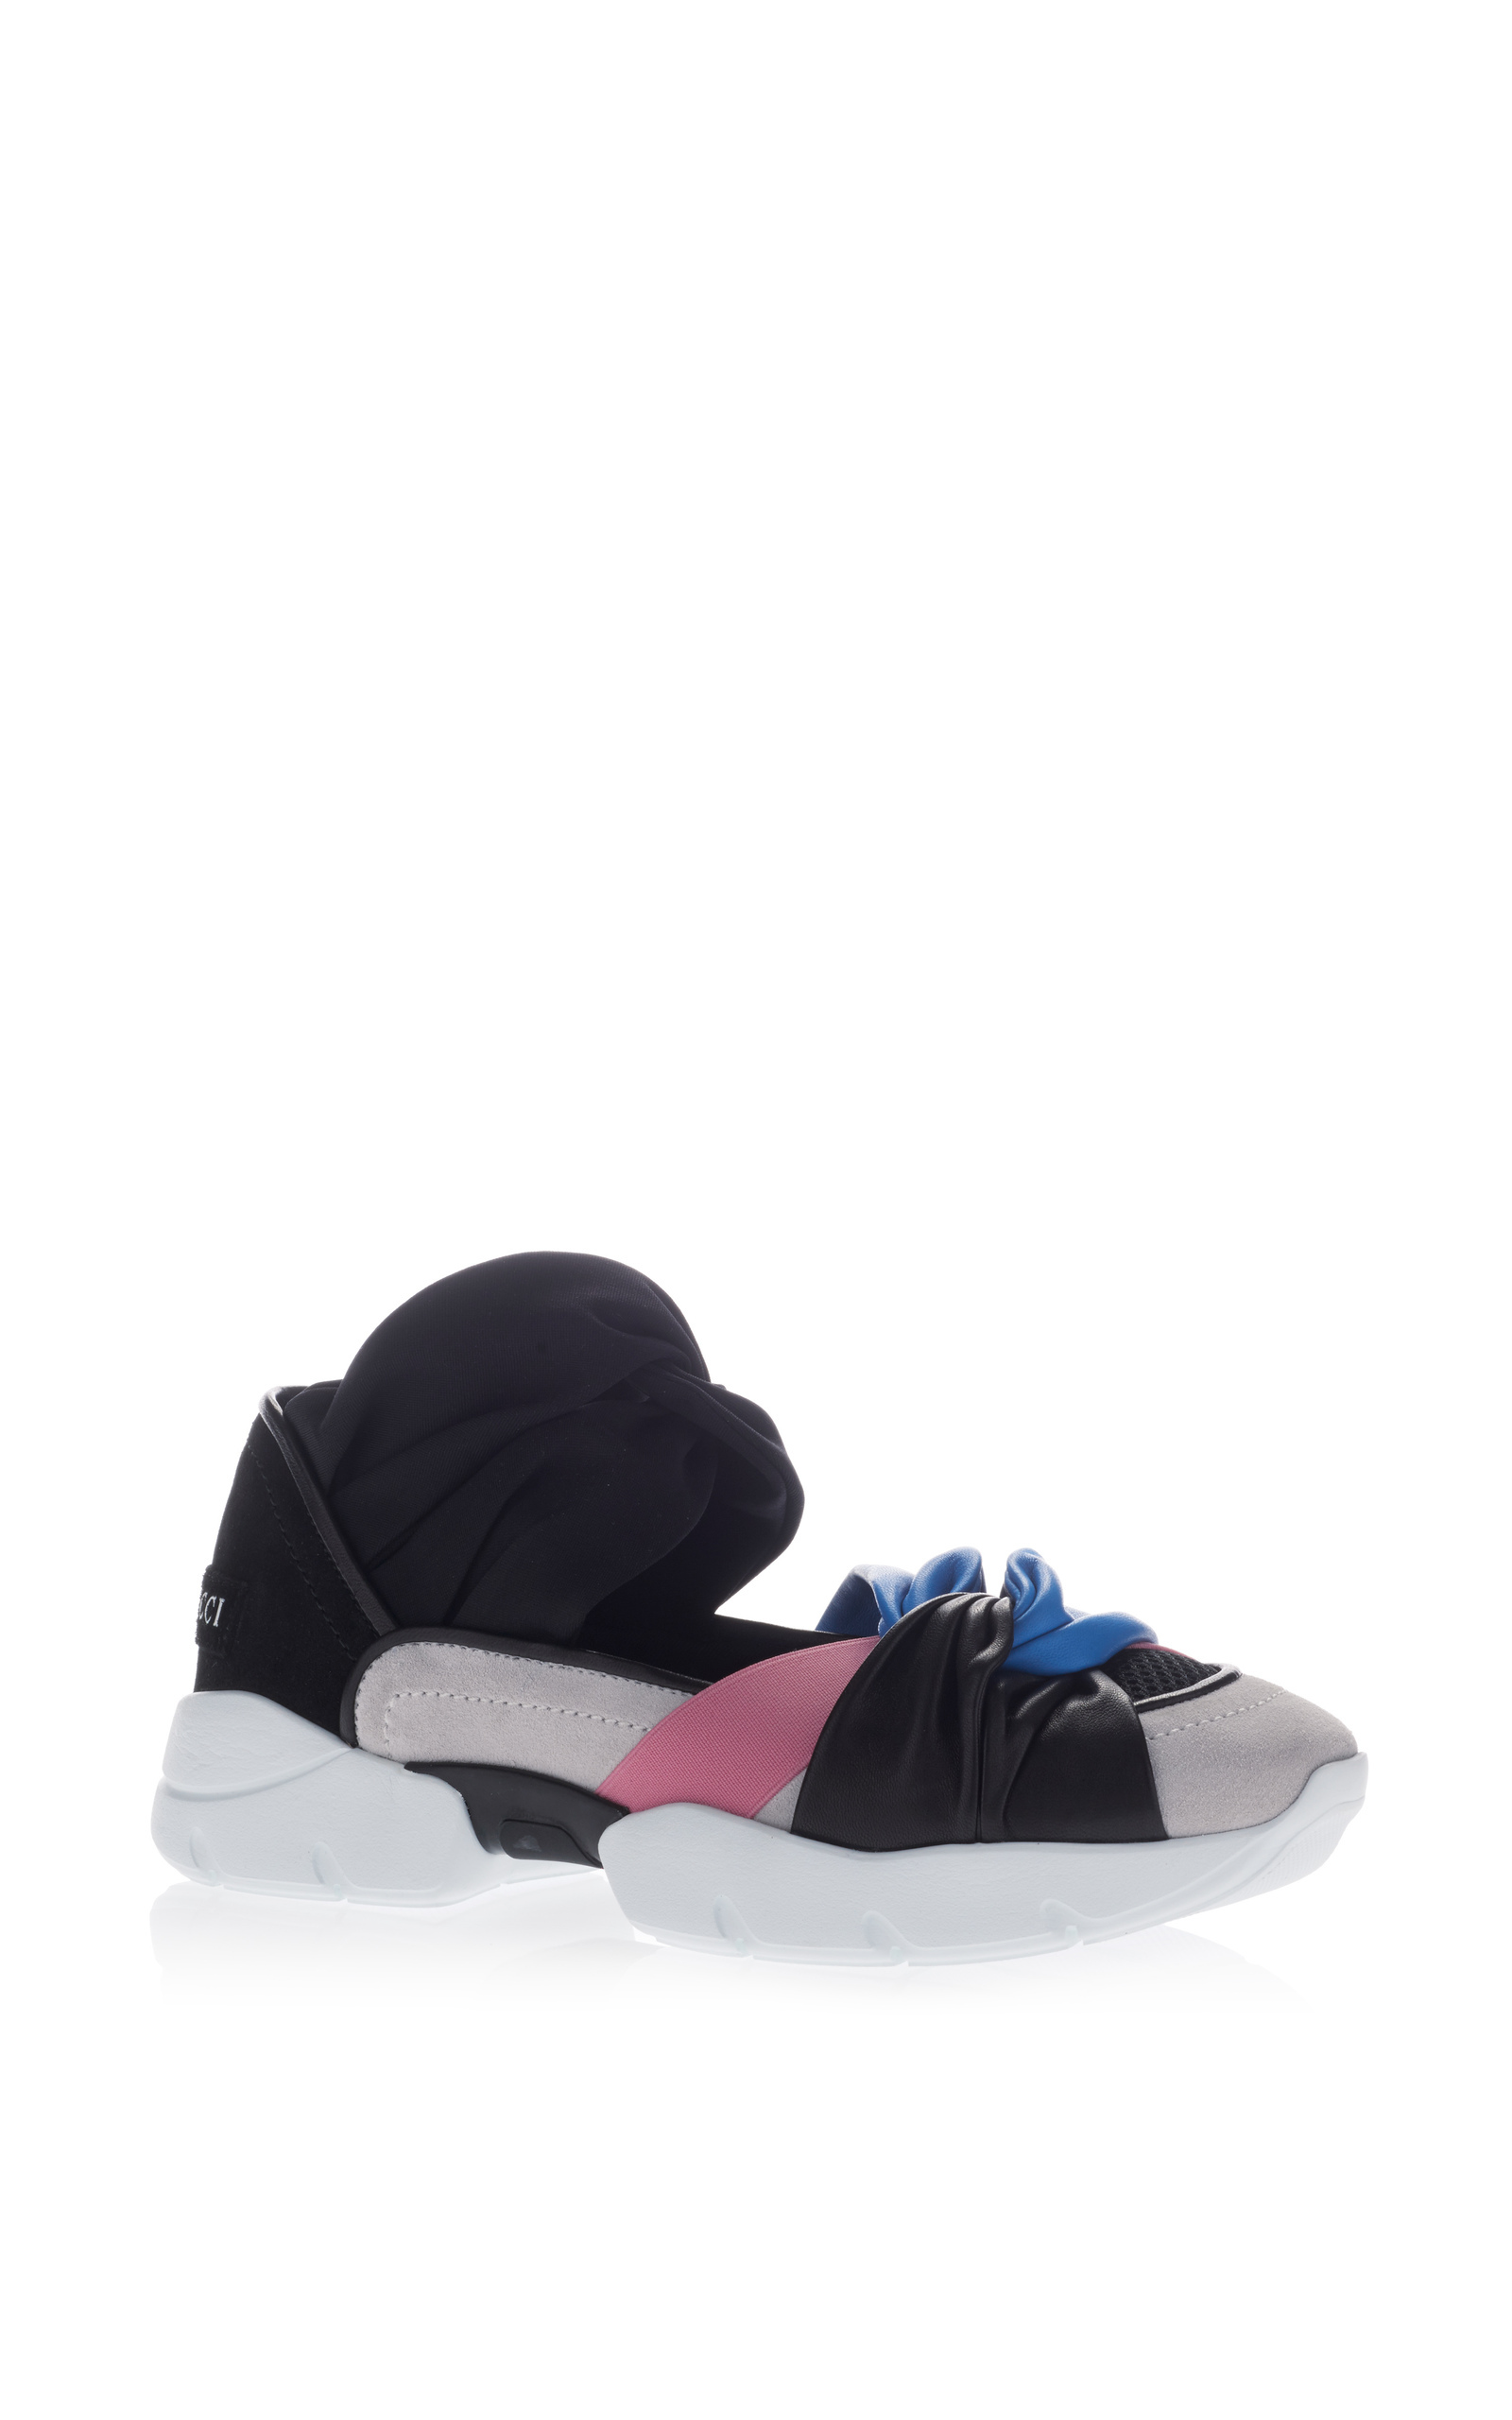 Ballerina Sneakers, Black